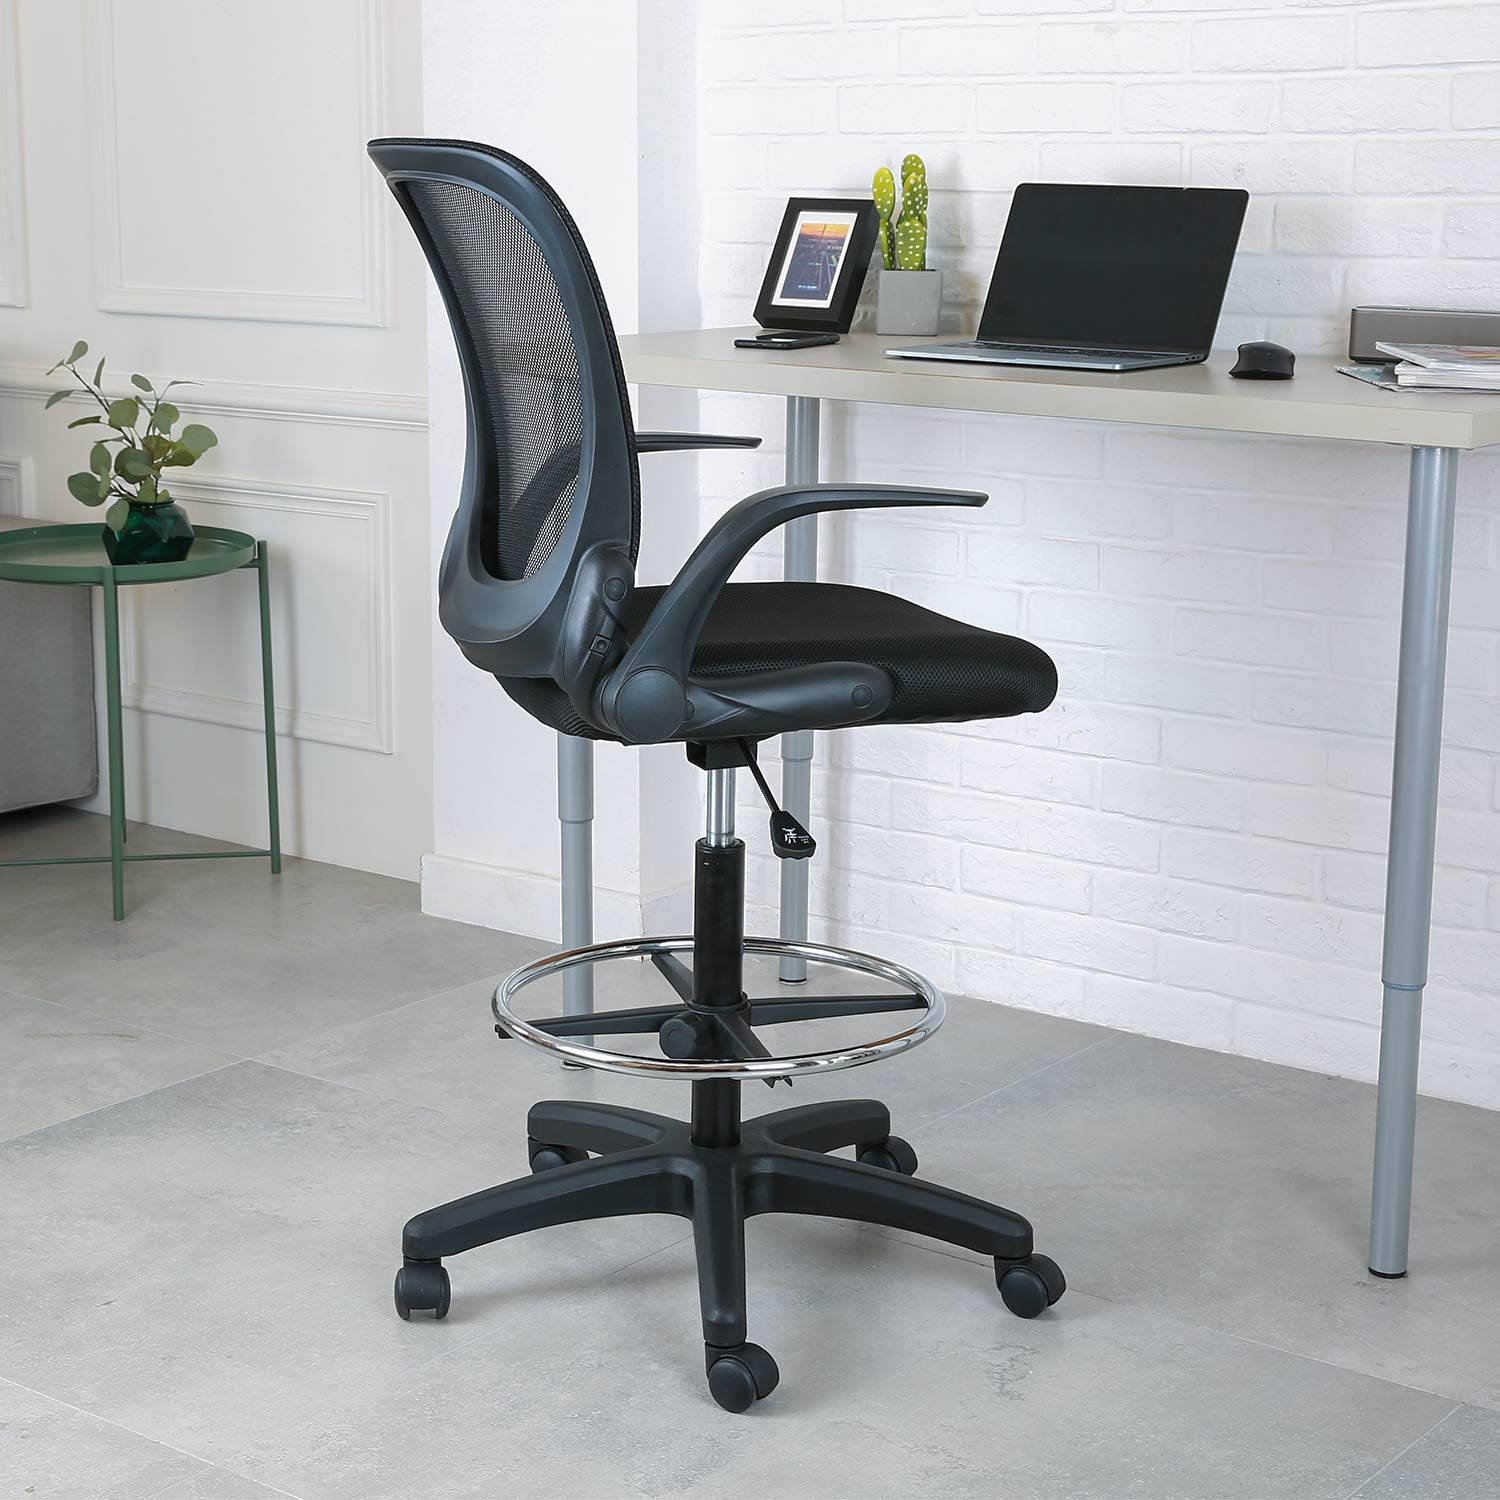 YOUNIS Drafting Chair with Black Fabric Seat, Adjustable Armrest and Foot Ring, Black Breathable mesh backrest, Reception Desk Chair, Tall Office Chair by YOUNIS (Image #1)